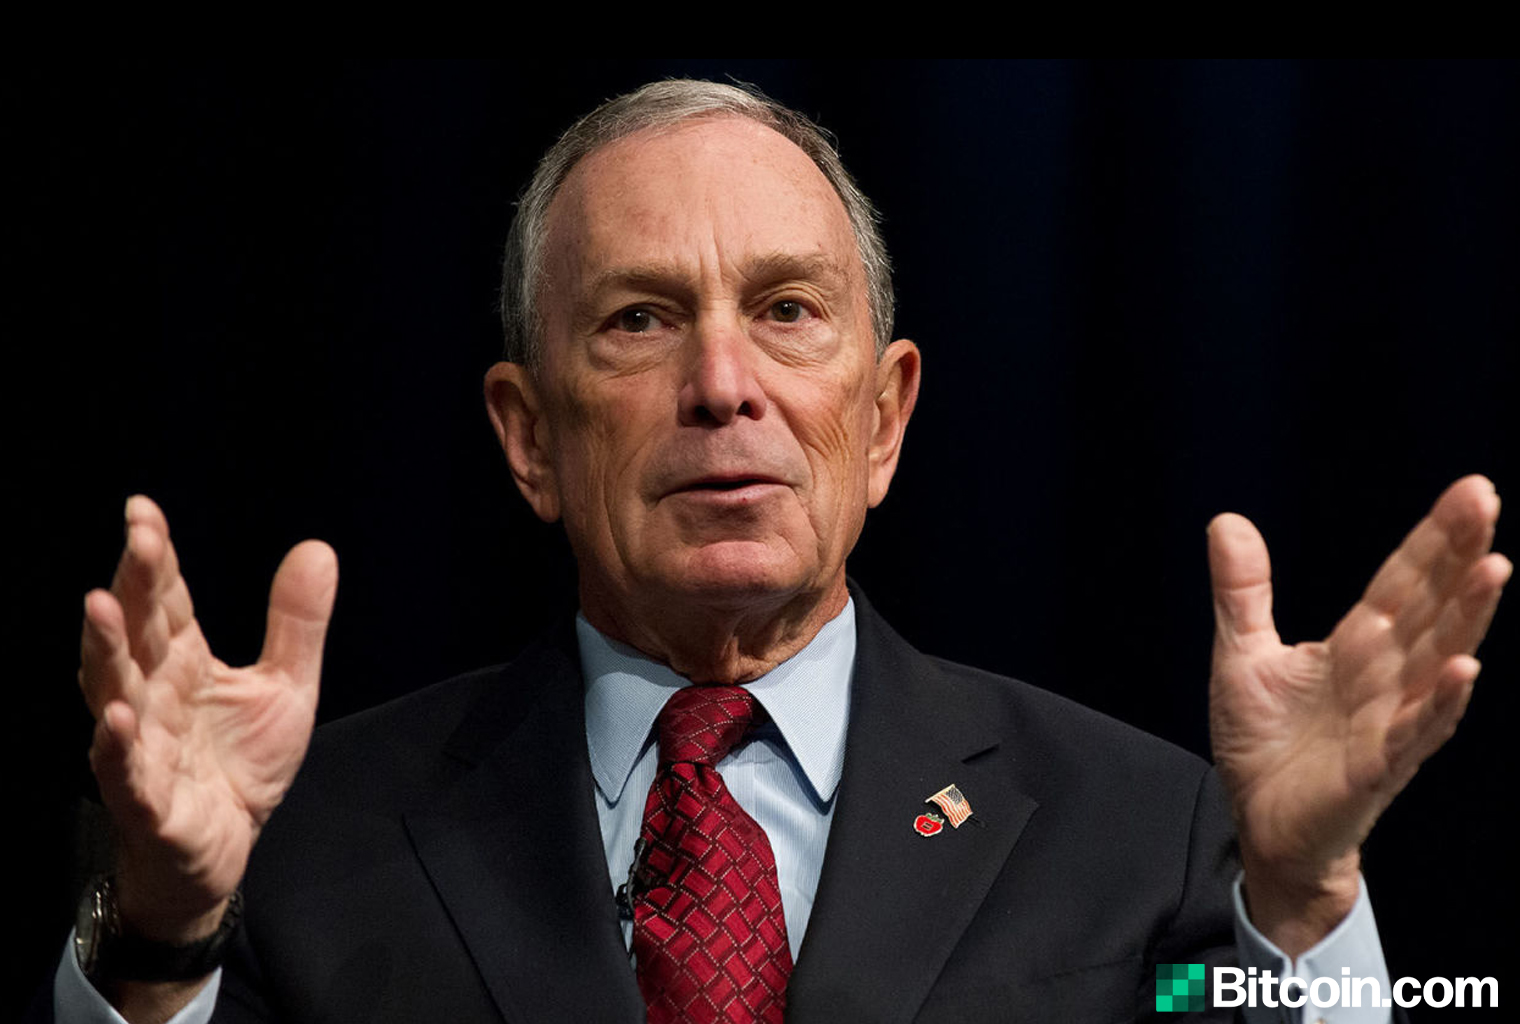 US Presidential Candidate Mike Bloomberg's Finance Policy Begs for Strict Bitcoin Regulations